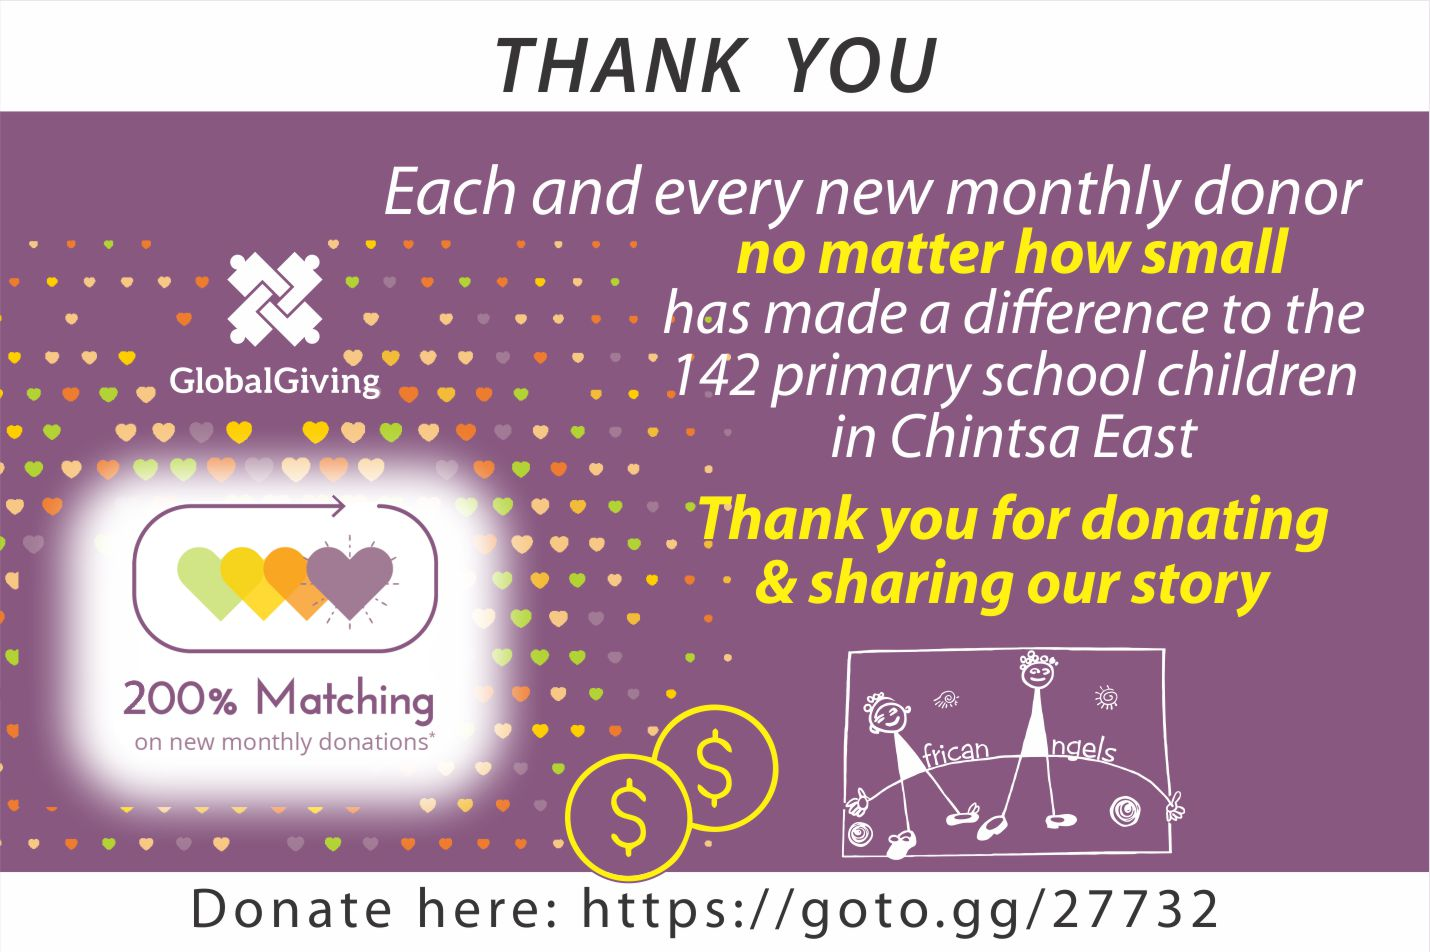 Global Giving 200% matching campaign thanks